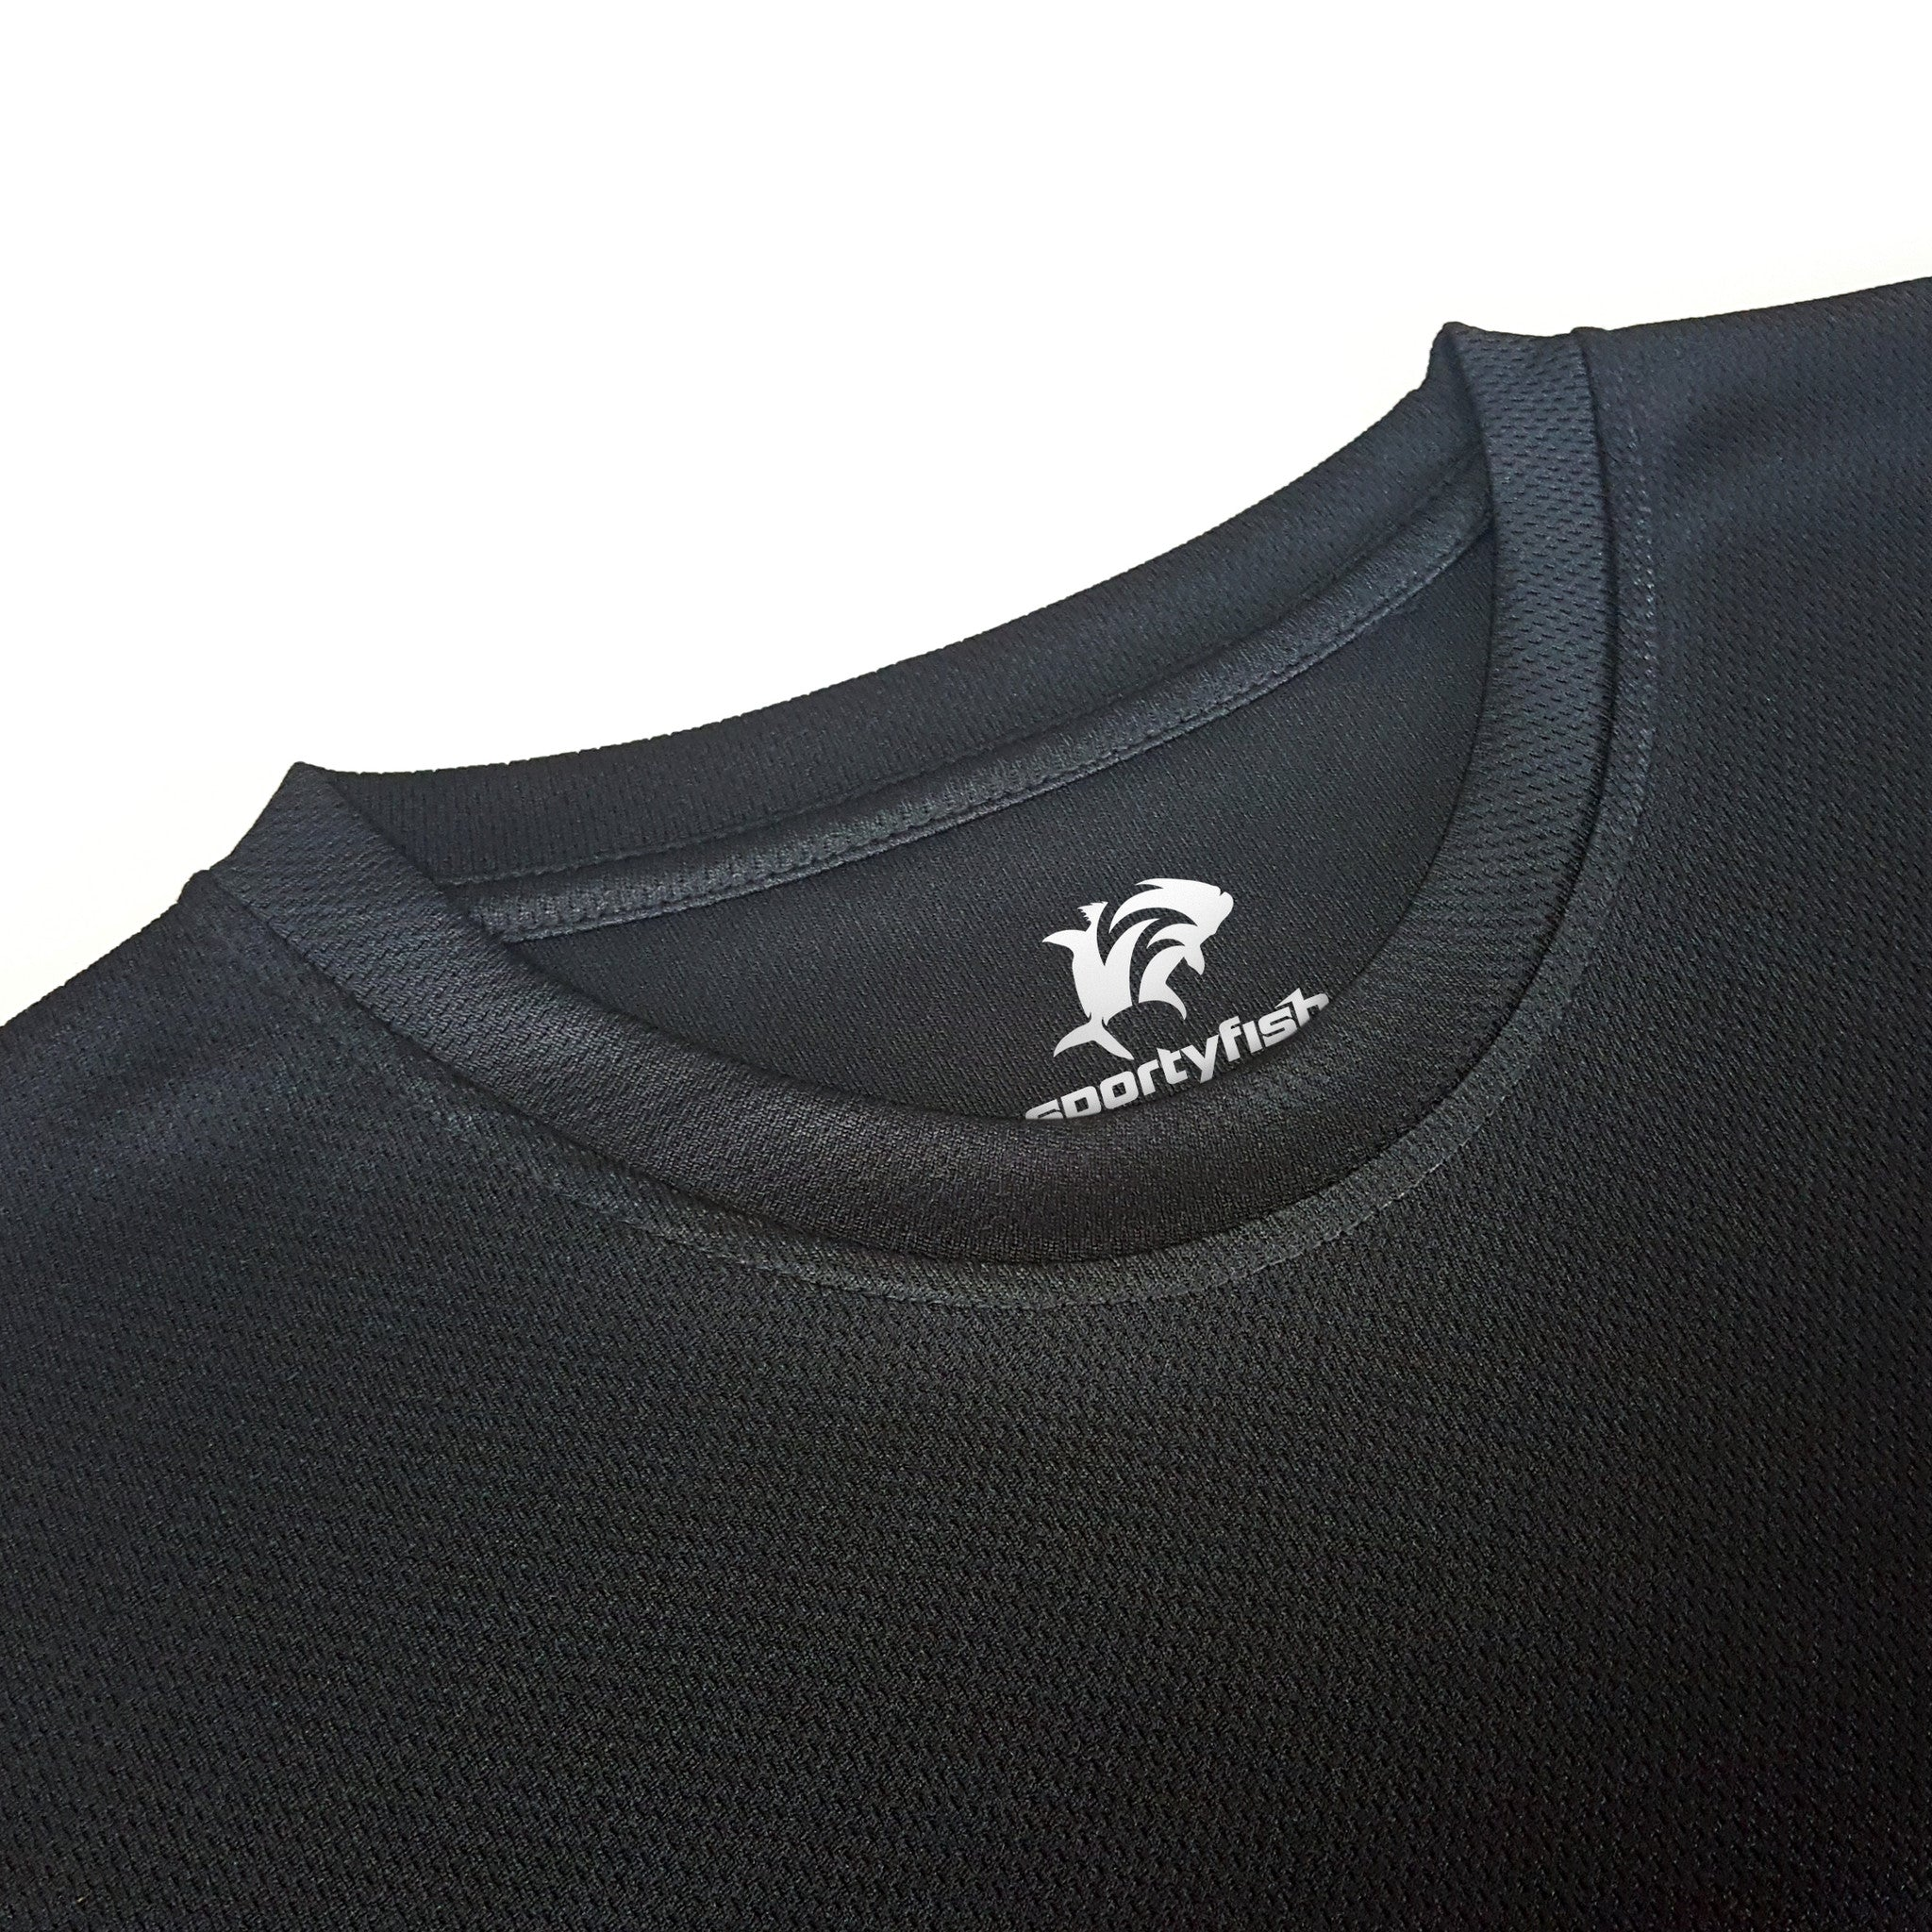 SportyFish Black Series black Long-sleeves t-shirt: Black Marlin close-up view 3